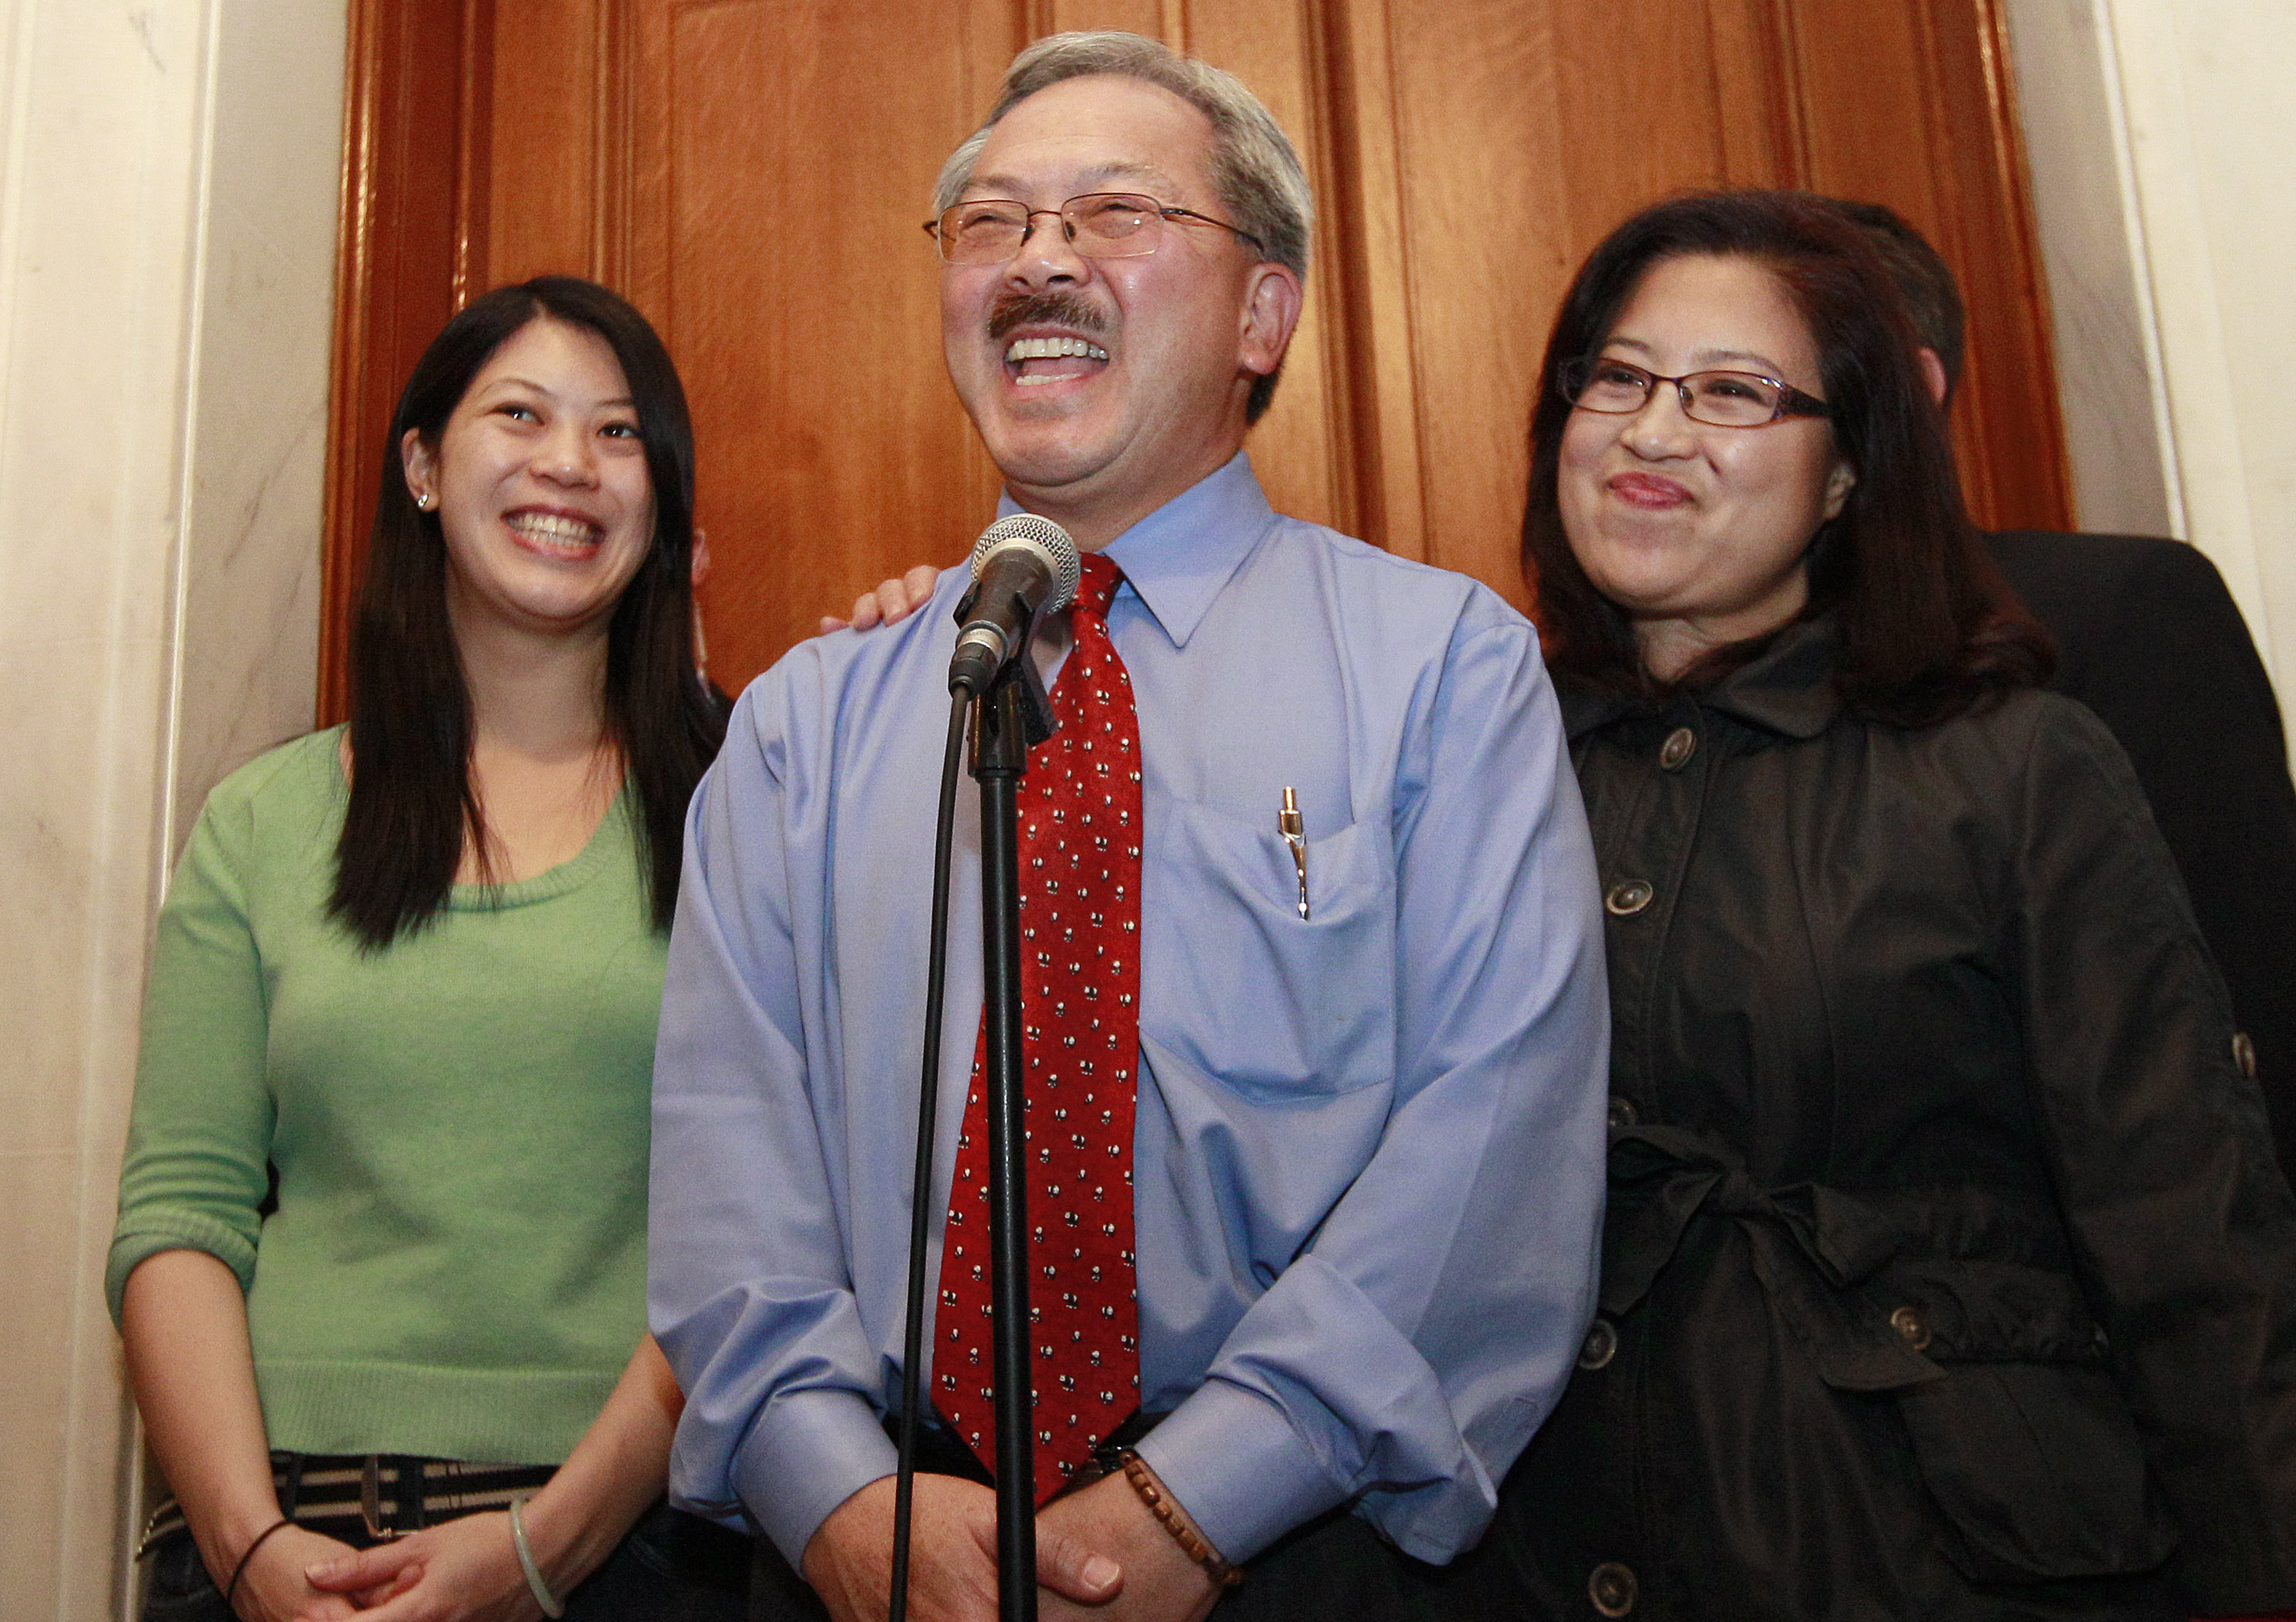 <div class='meta'><div class='origin-logo' data-origin='none'></div><span class='caption-text' data-credit='Jeff Chiu/AP Photo'>Mayor Ed Lee, center, speaks at a news conference next to his wife Anita, right, and his daughter Brianna outside of his office at City Hall, Wednesday, Nov. 9, 2011.</span></div>